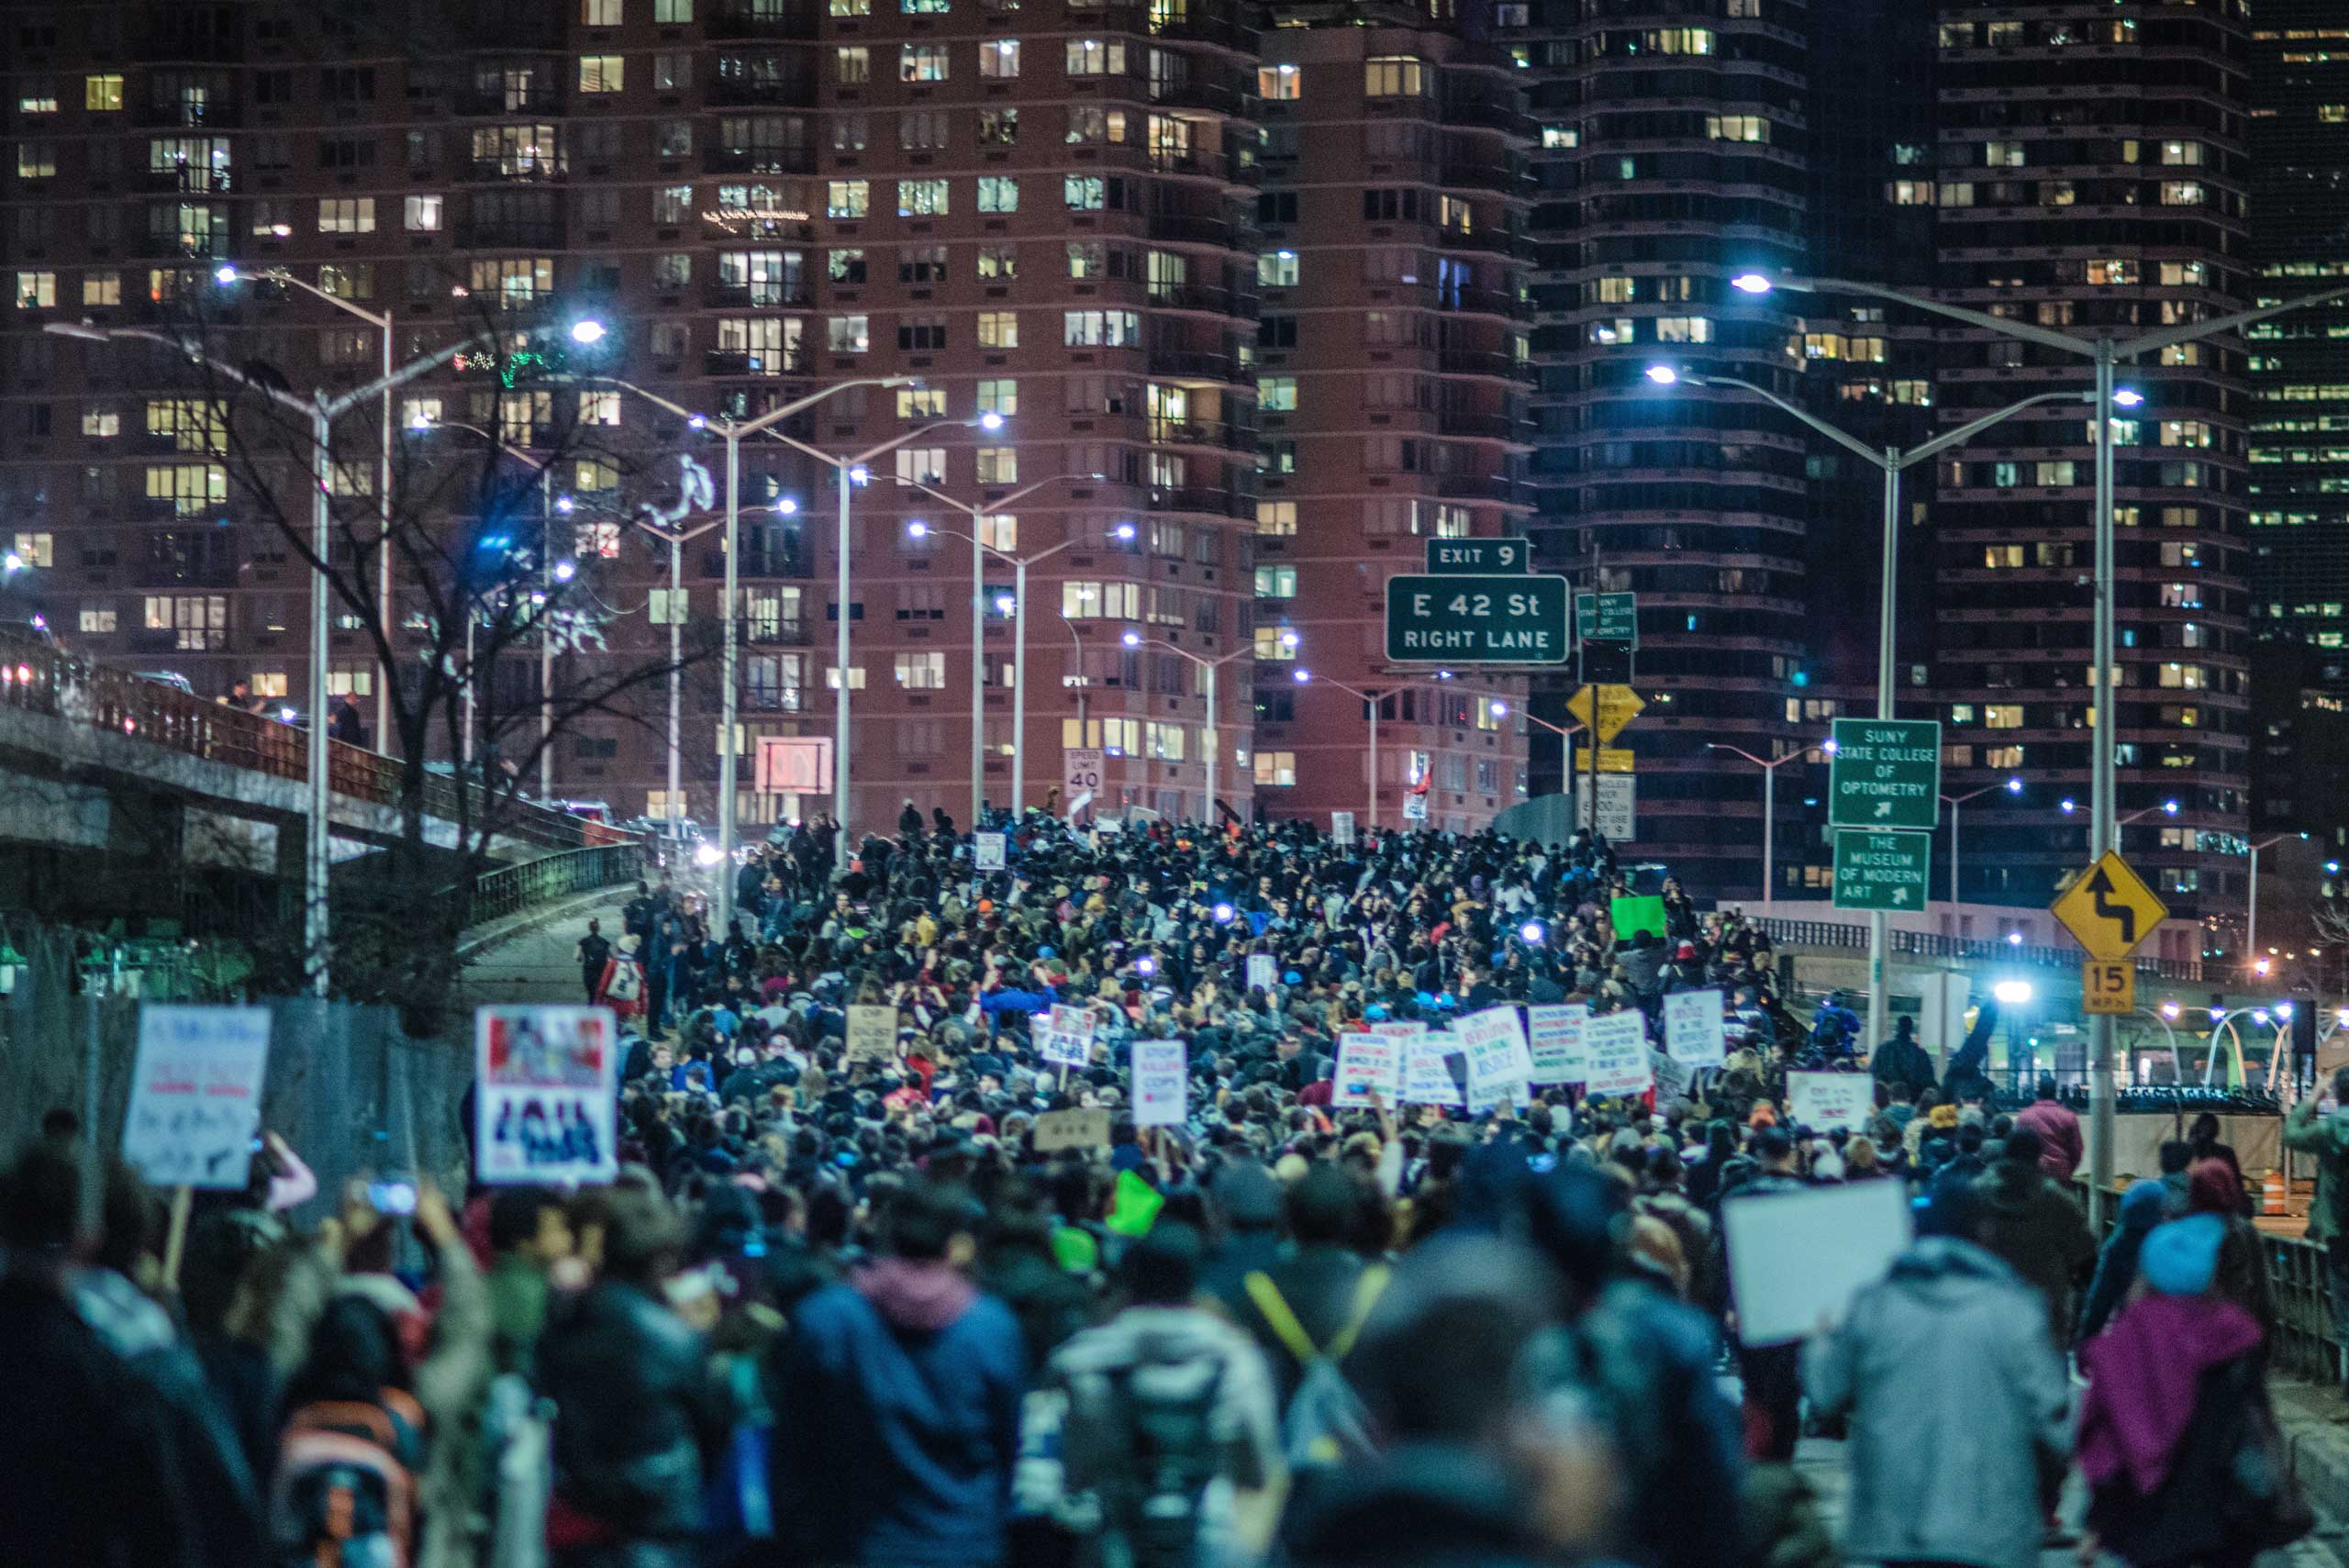 Thousands of protestors take to the streets to protest the grand jury decision, in New York City on Nov. 25, 2014.